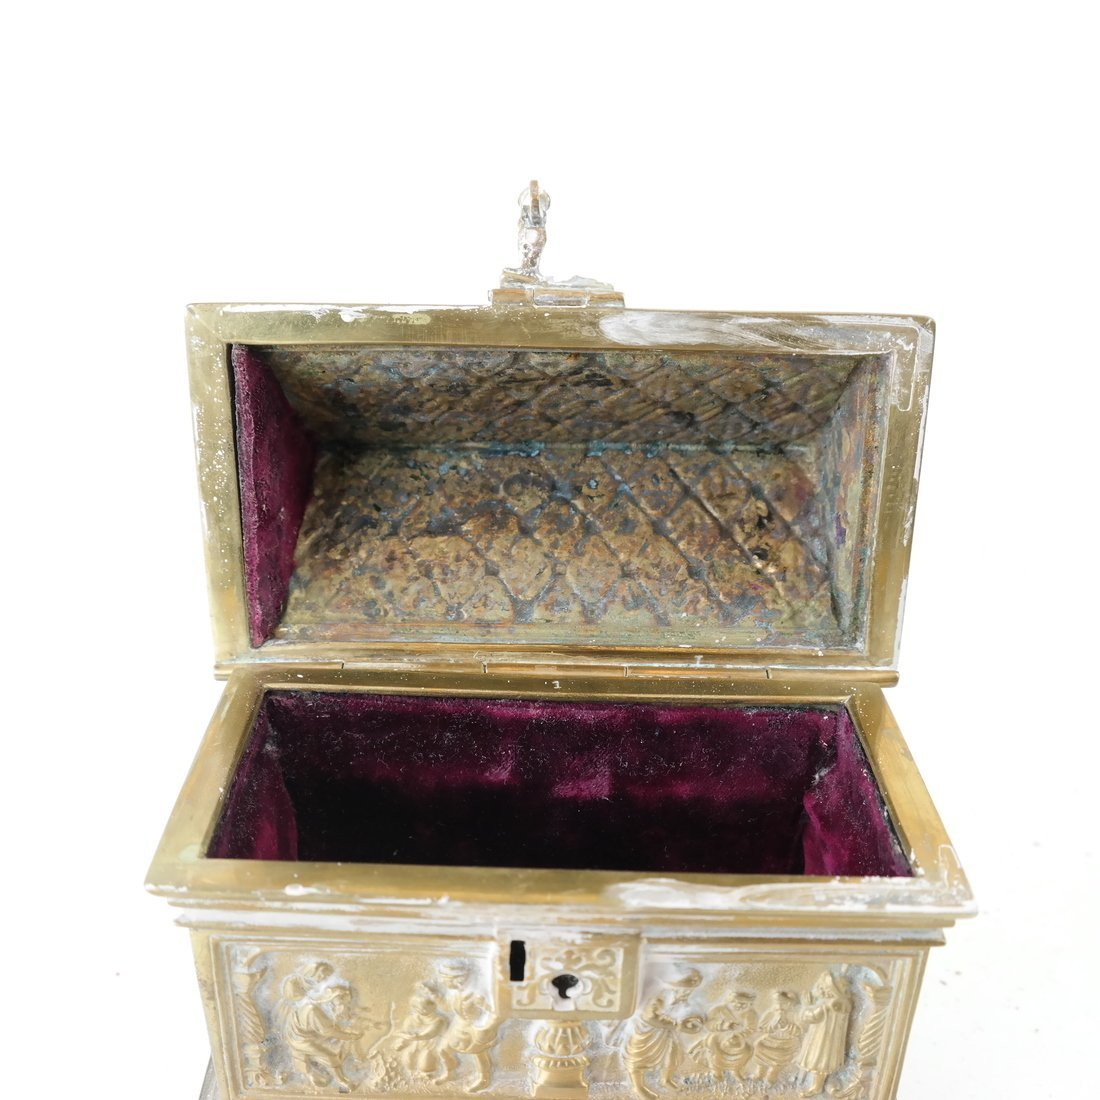 Ornate Casket Form Box - 3